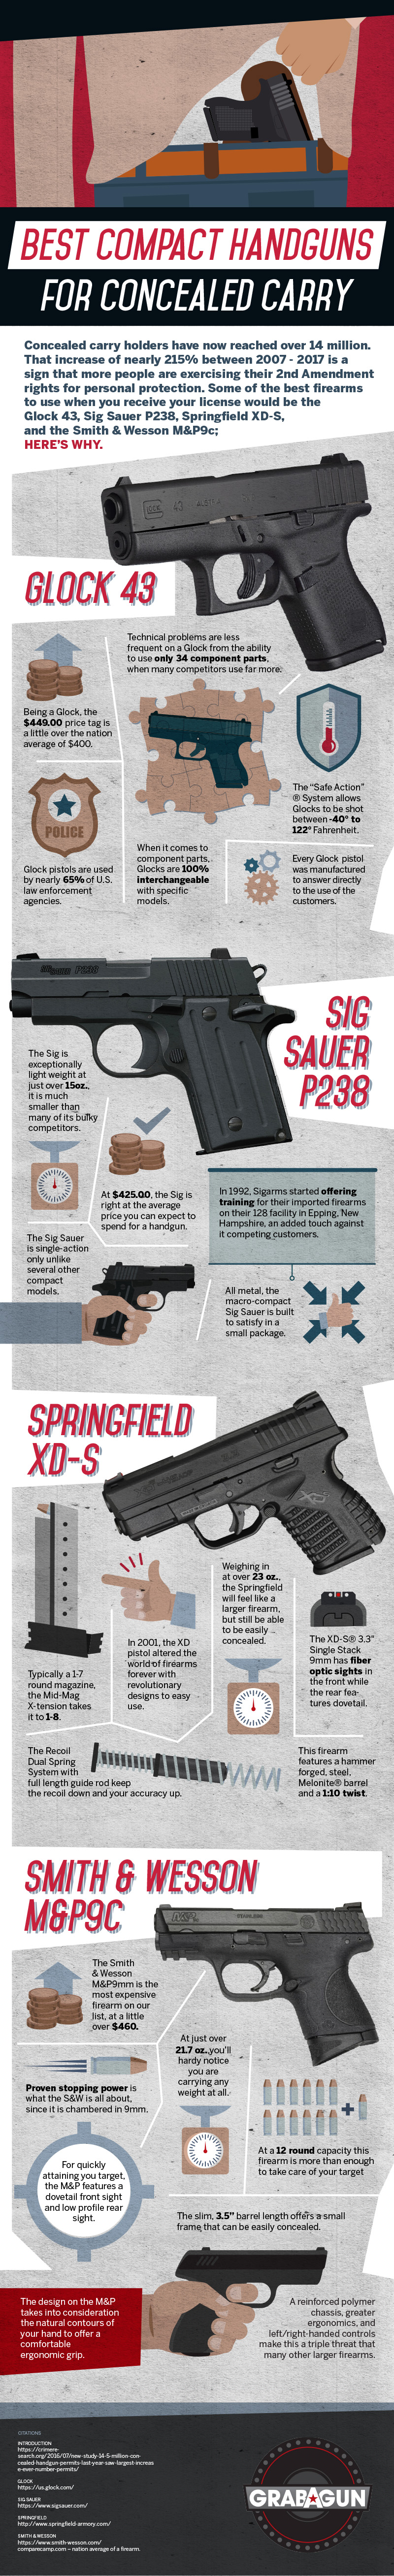 Best Compact Handguns for Concealed Carry